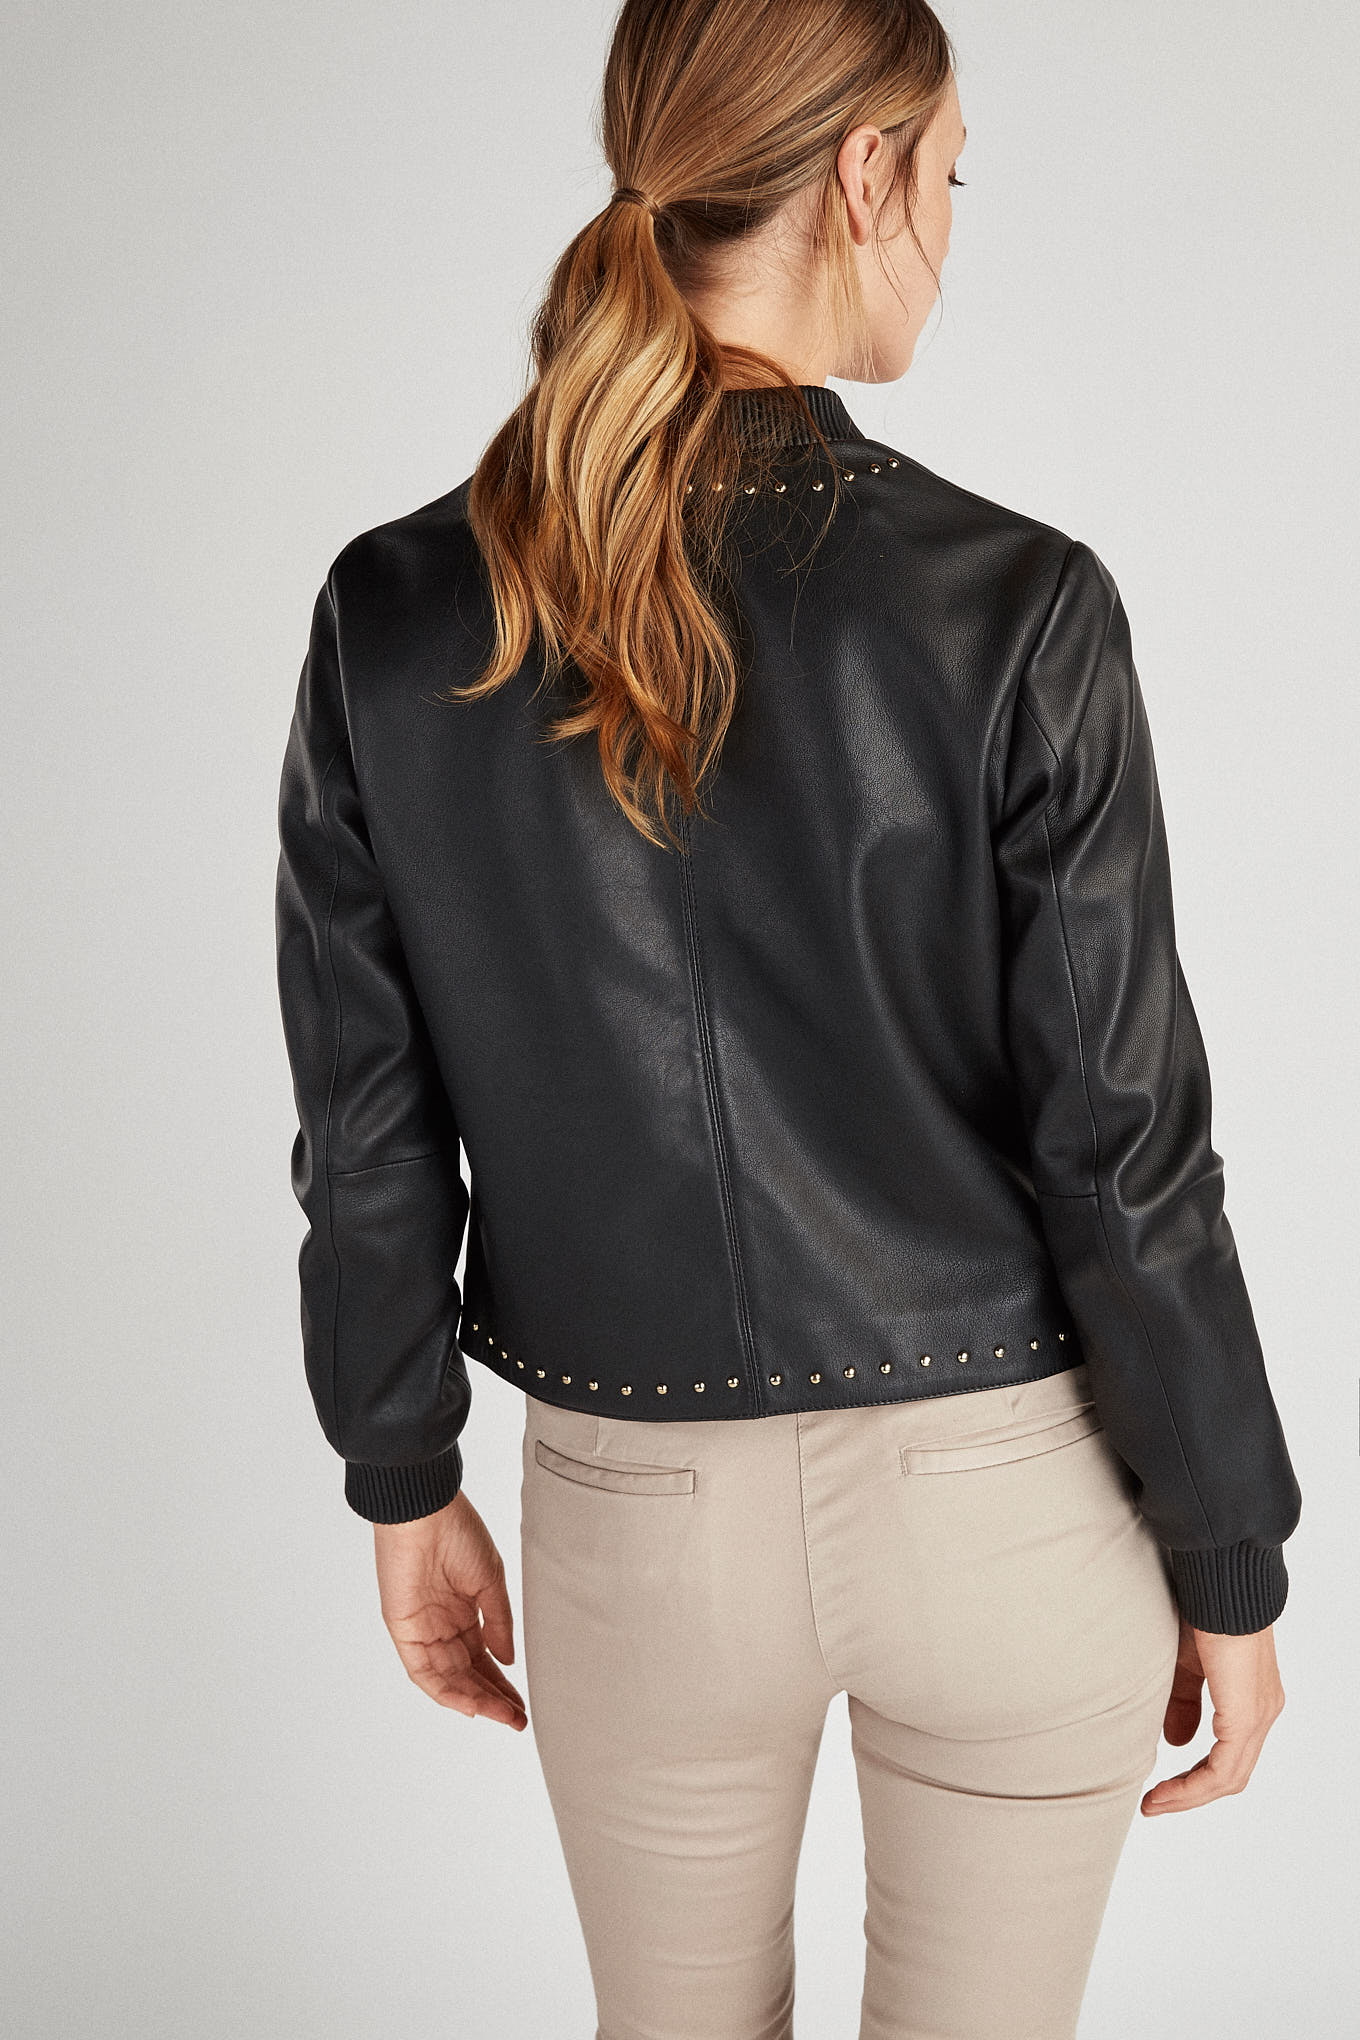 Leather Jacket Black Sport Woman